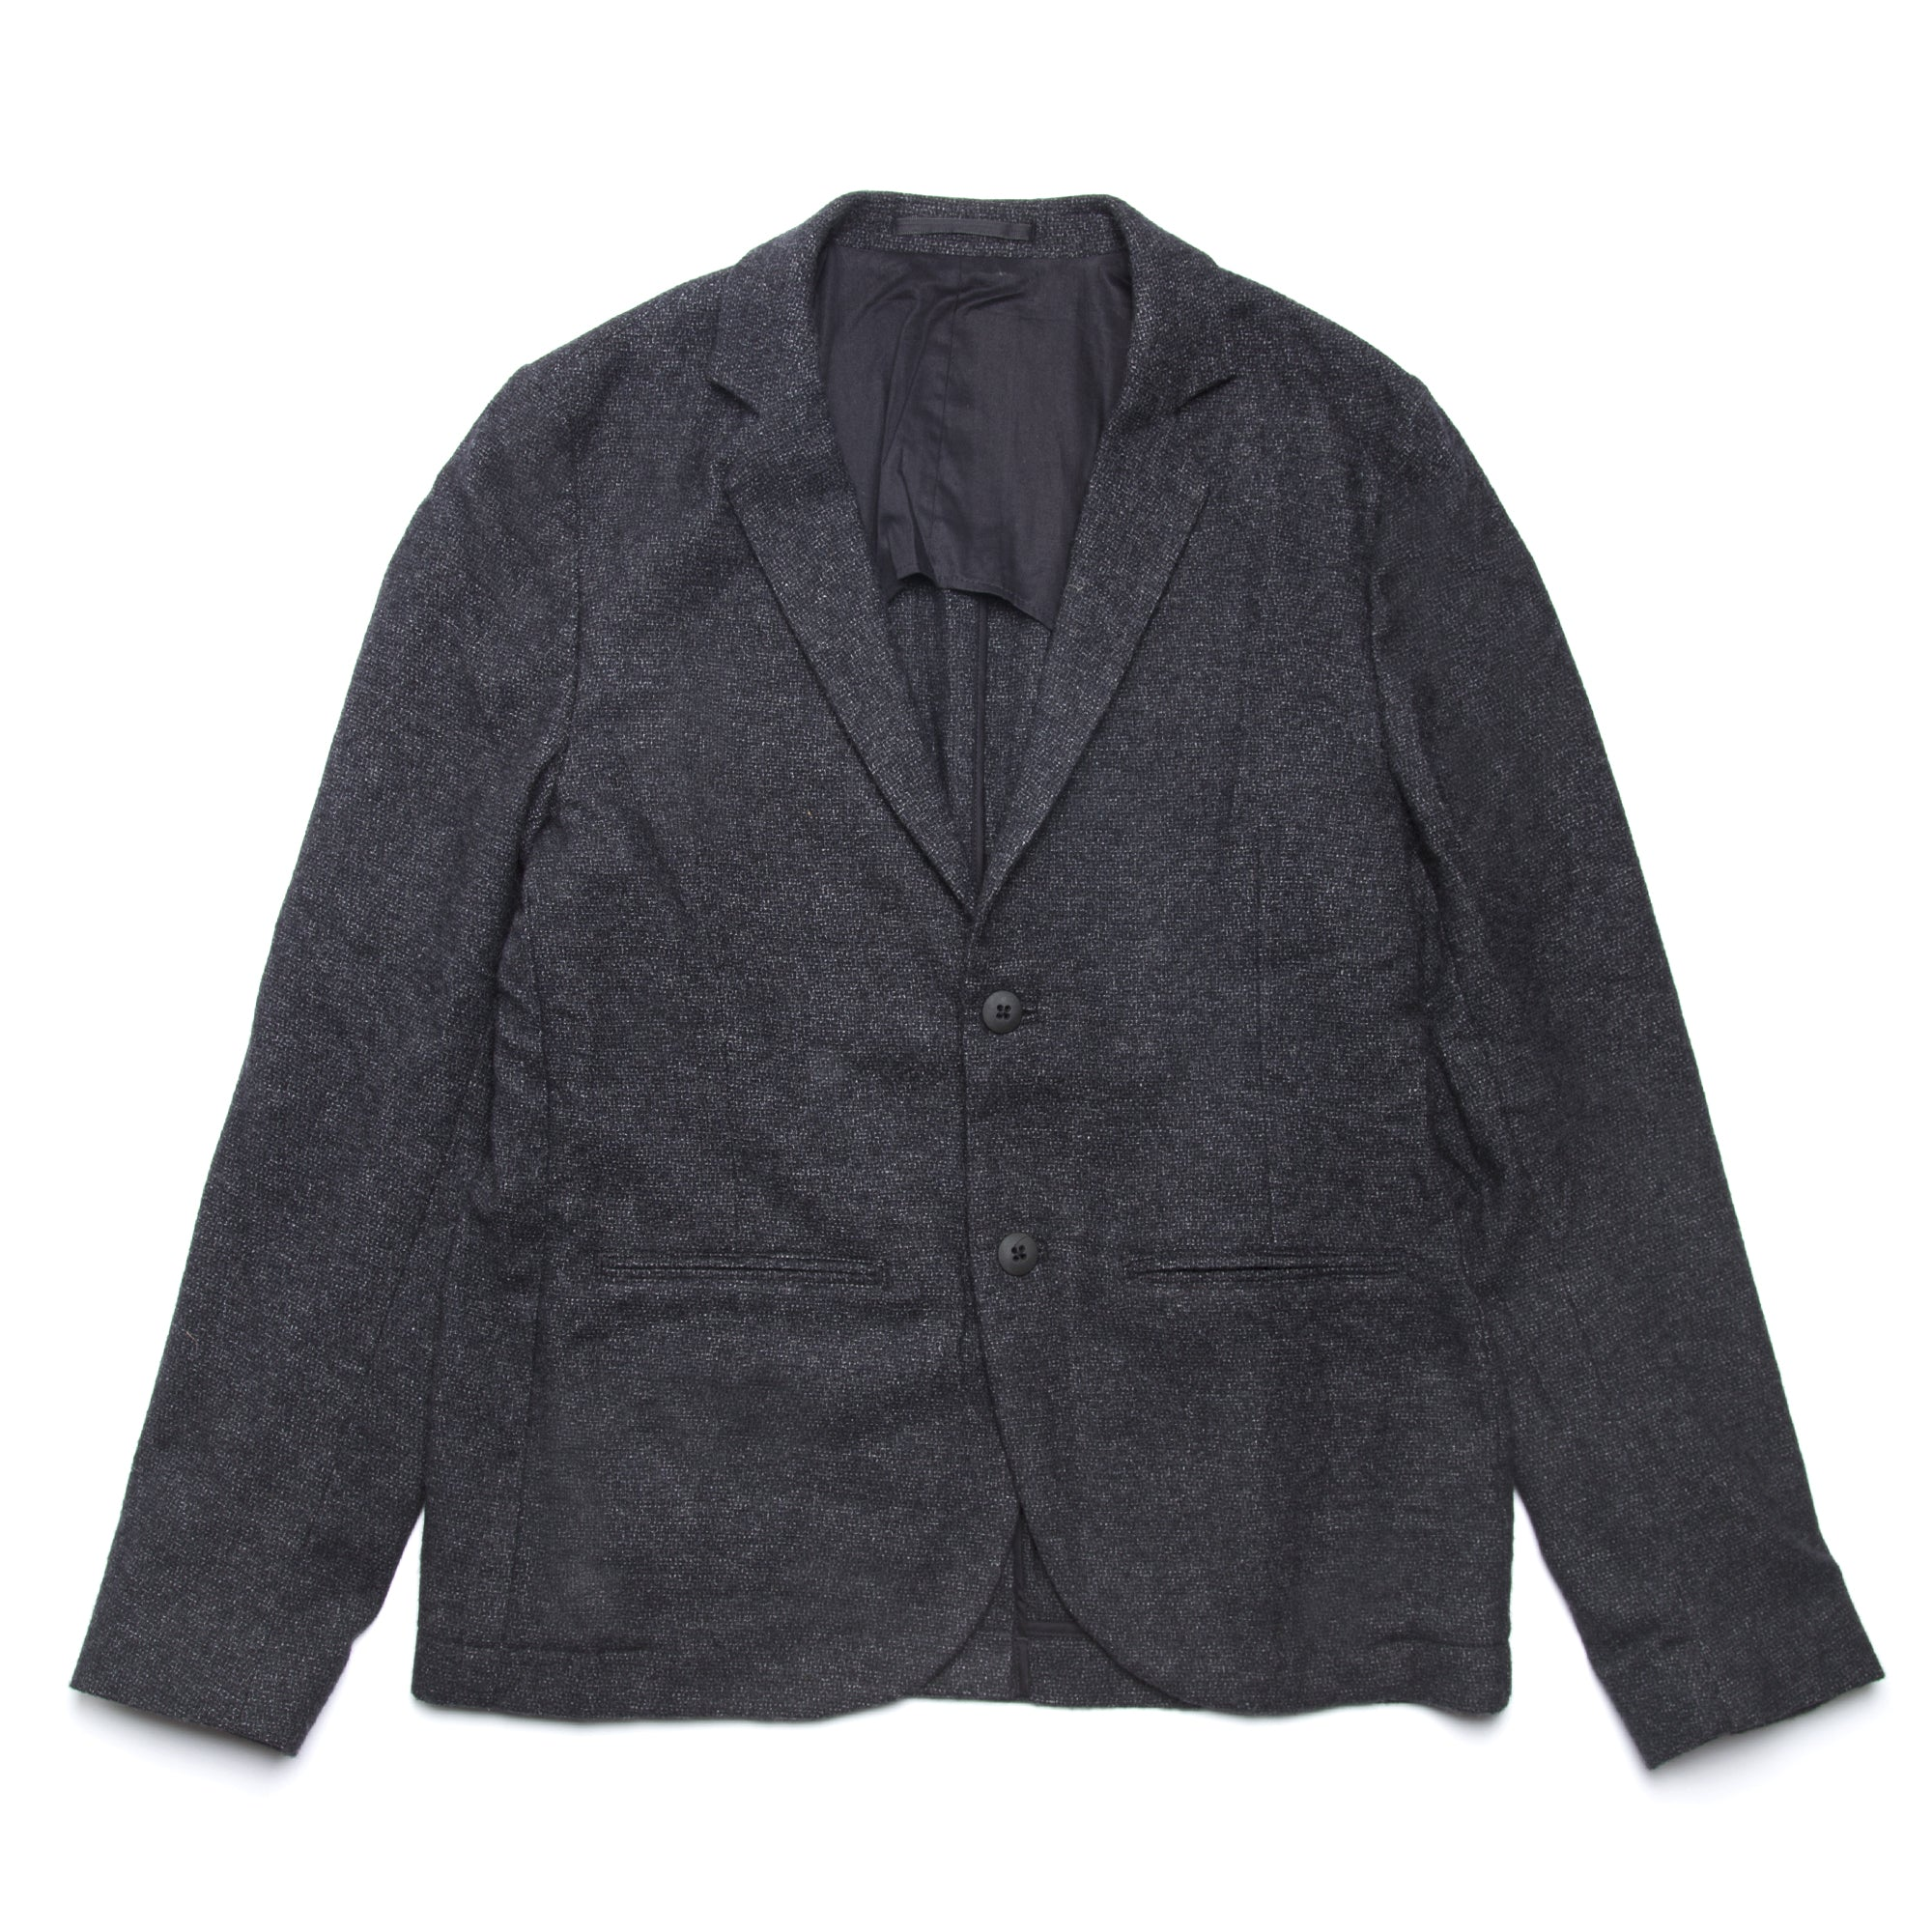 Counter Jacket - Charcoal Fleck